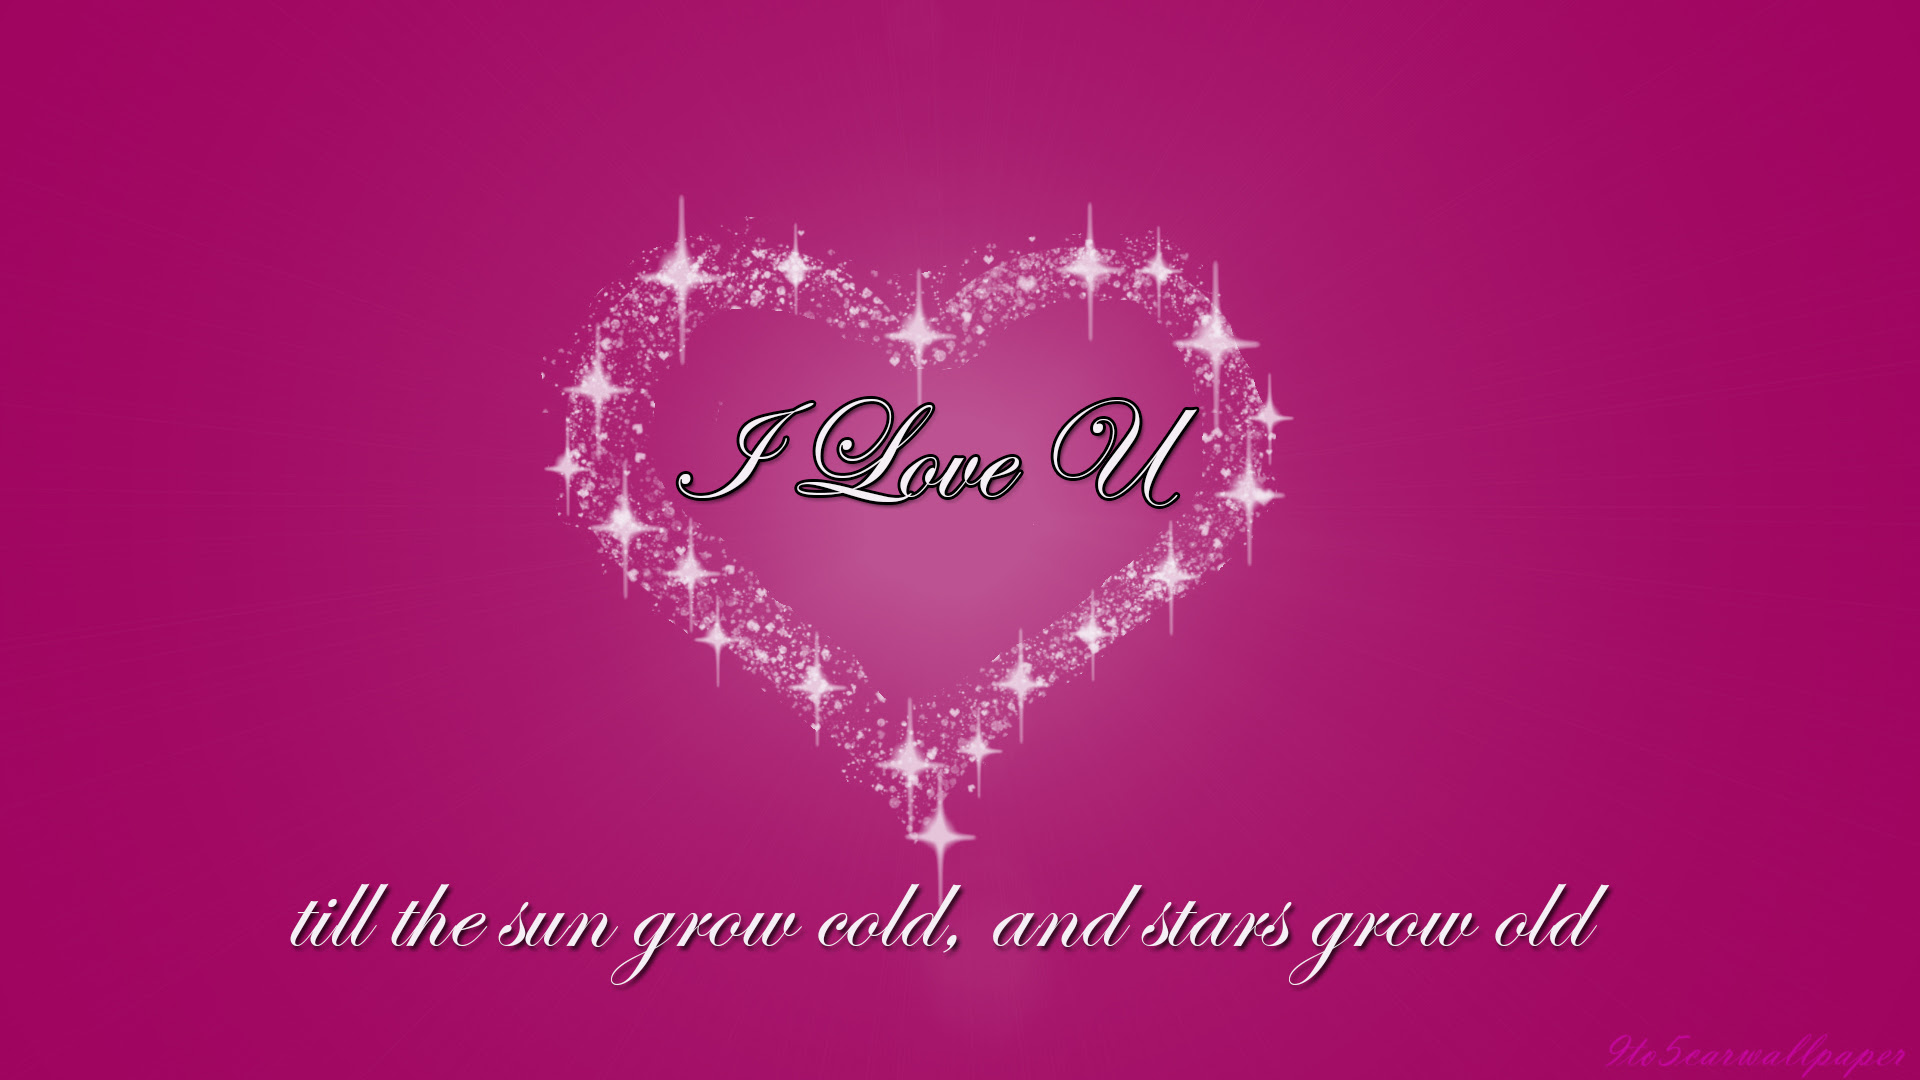 i love you wallpapers quotes wishes images cards